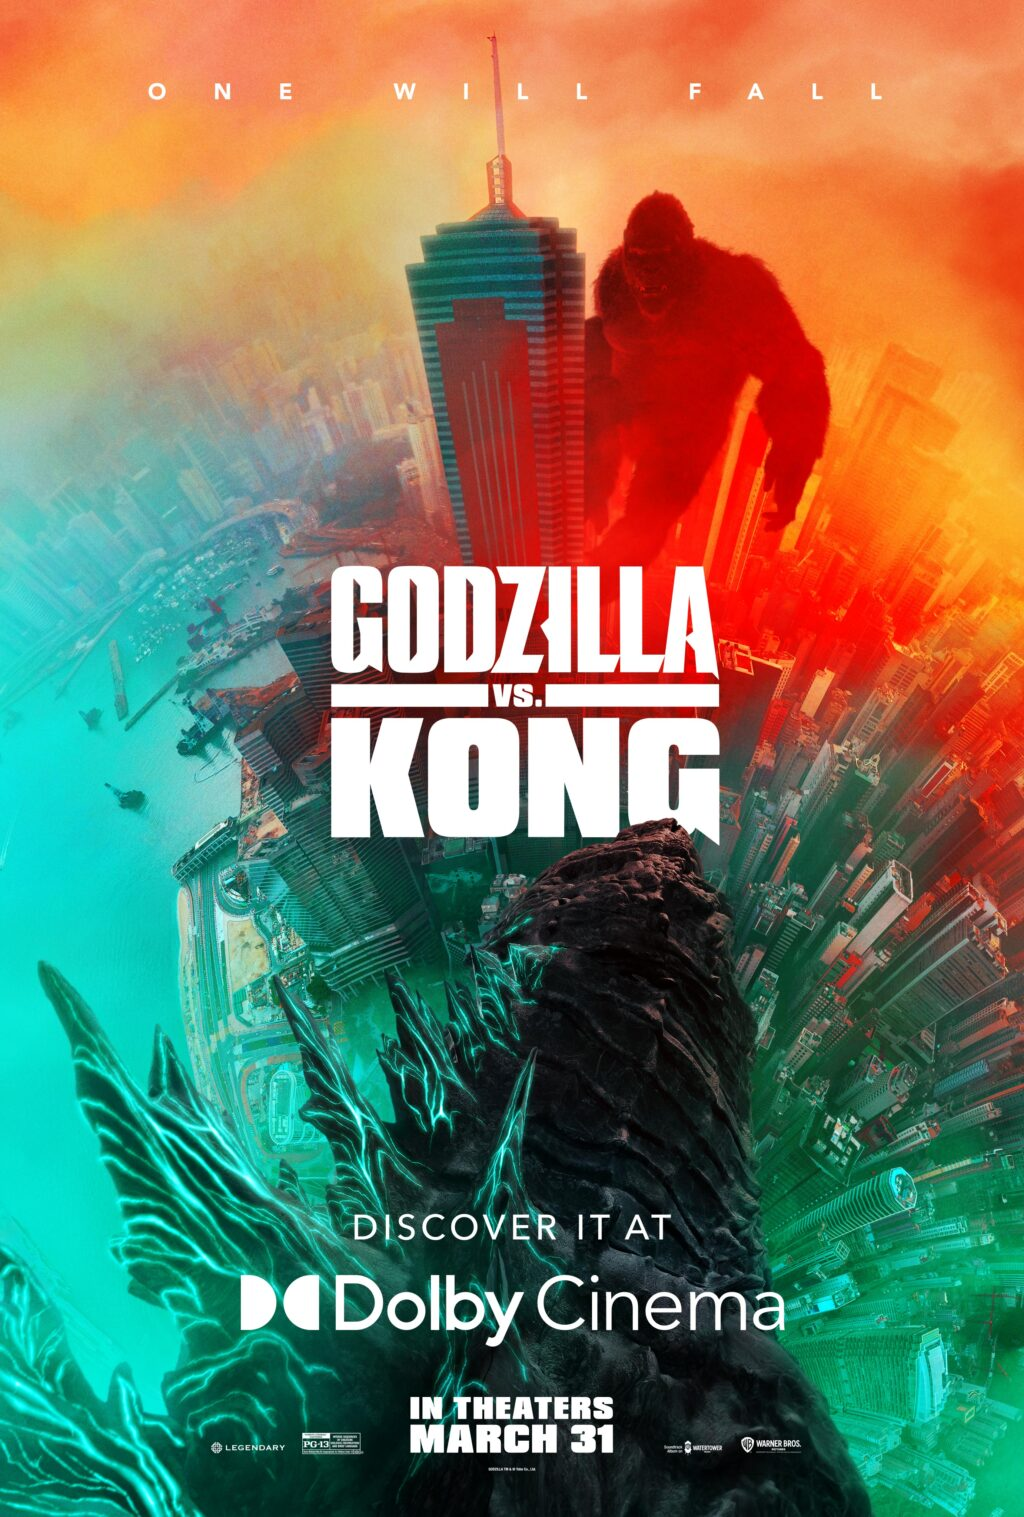 Godzilla vs Kong poster 2 1024x1517 - The Entire MonsterVerse Has Now Been Encapsulated Into a Single Poster